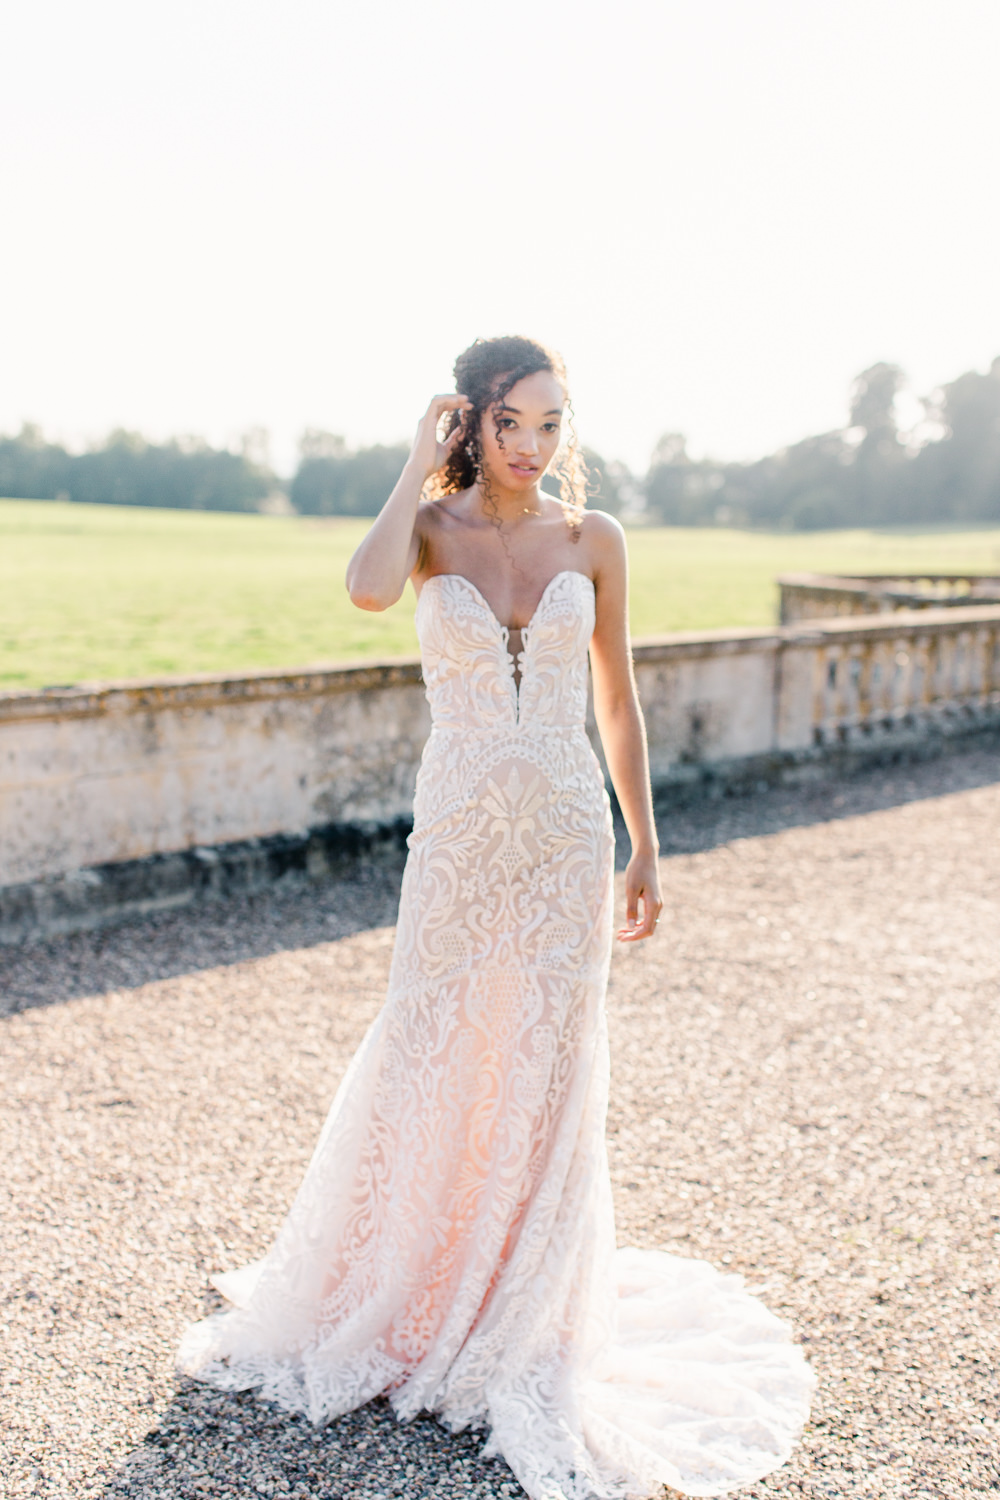 Dress Gown Bride Bridal Bride Bridal Hair Make Up Lace Sweetheart Strapless Stately Home Wedding Whitney Lloyd Photography